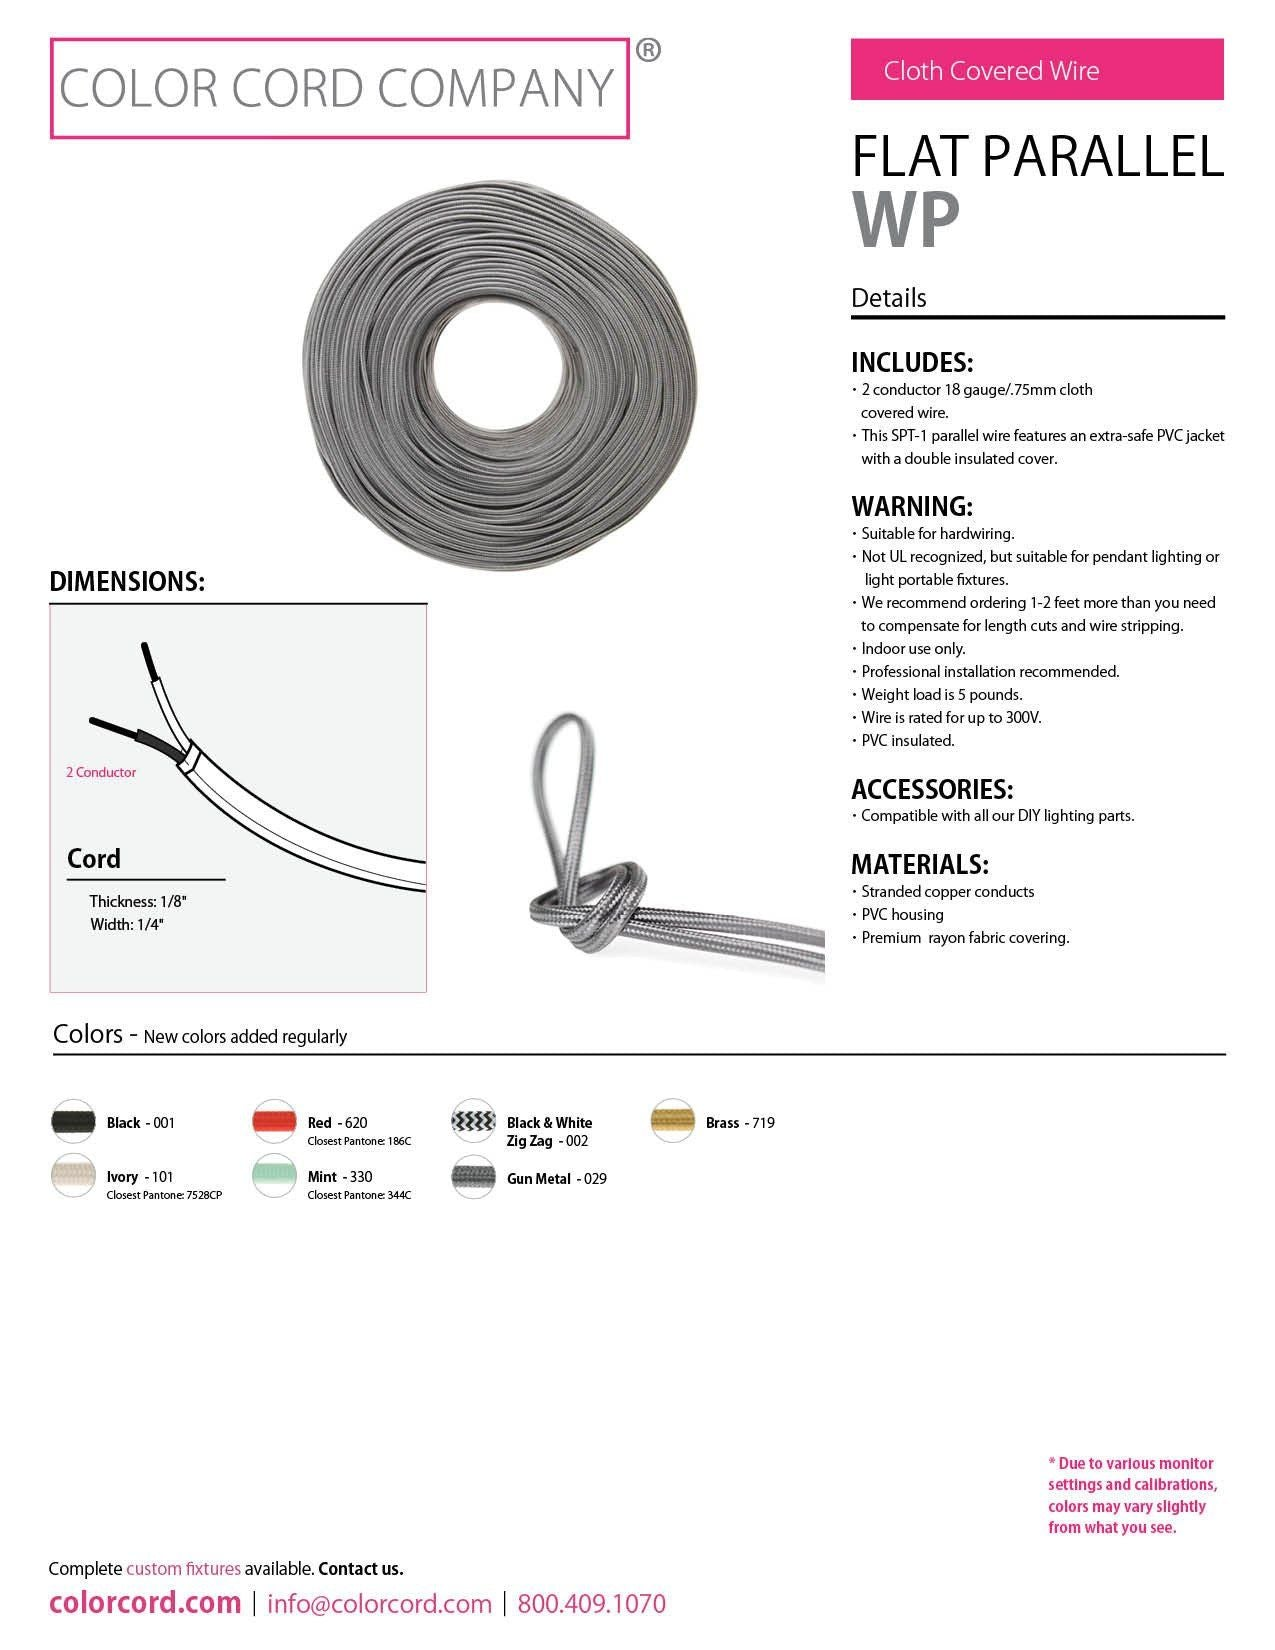 Diy Flat Parallel Wire Spt 1 Mint Color Cord Company